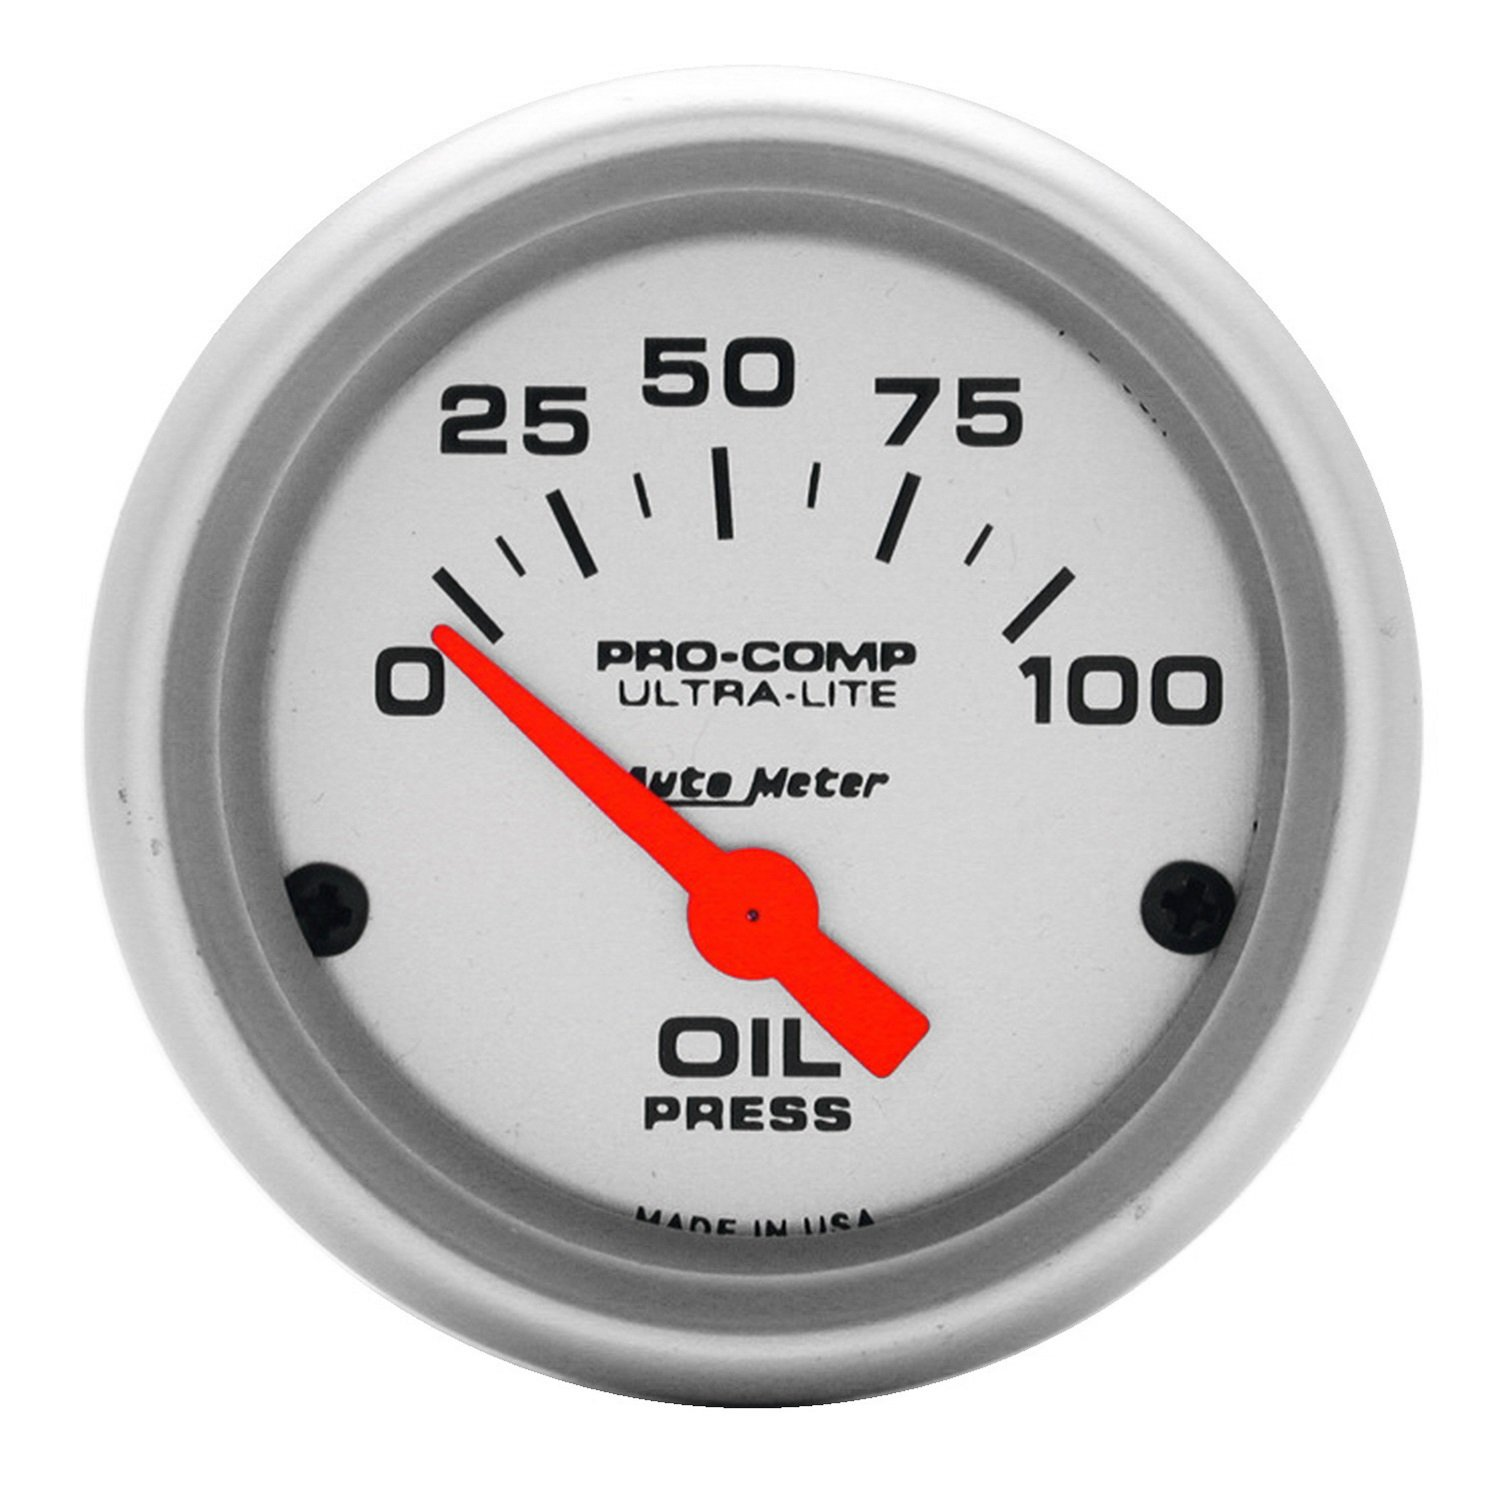 Auto Meter 4327 Ultra-Lite Electric Oil Pressure Gauge by Auto Meter